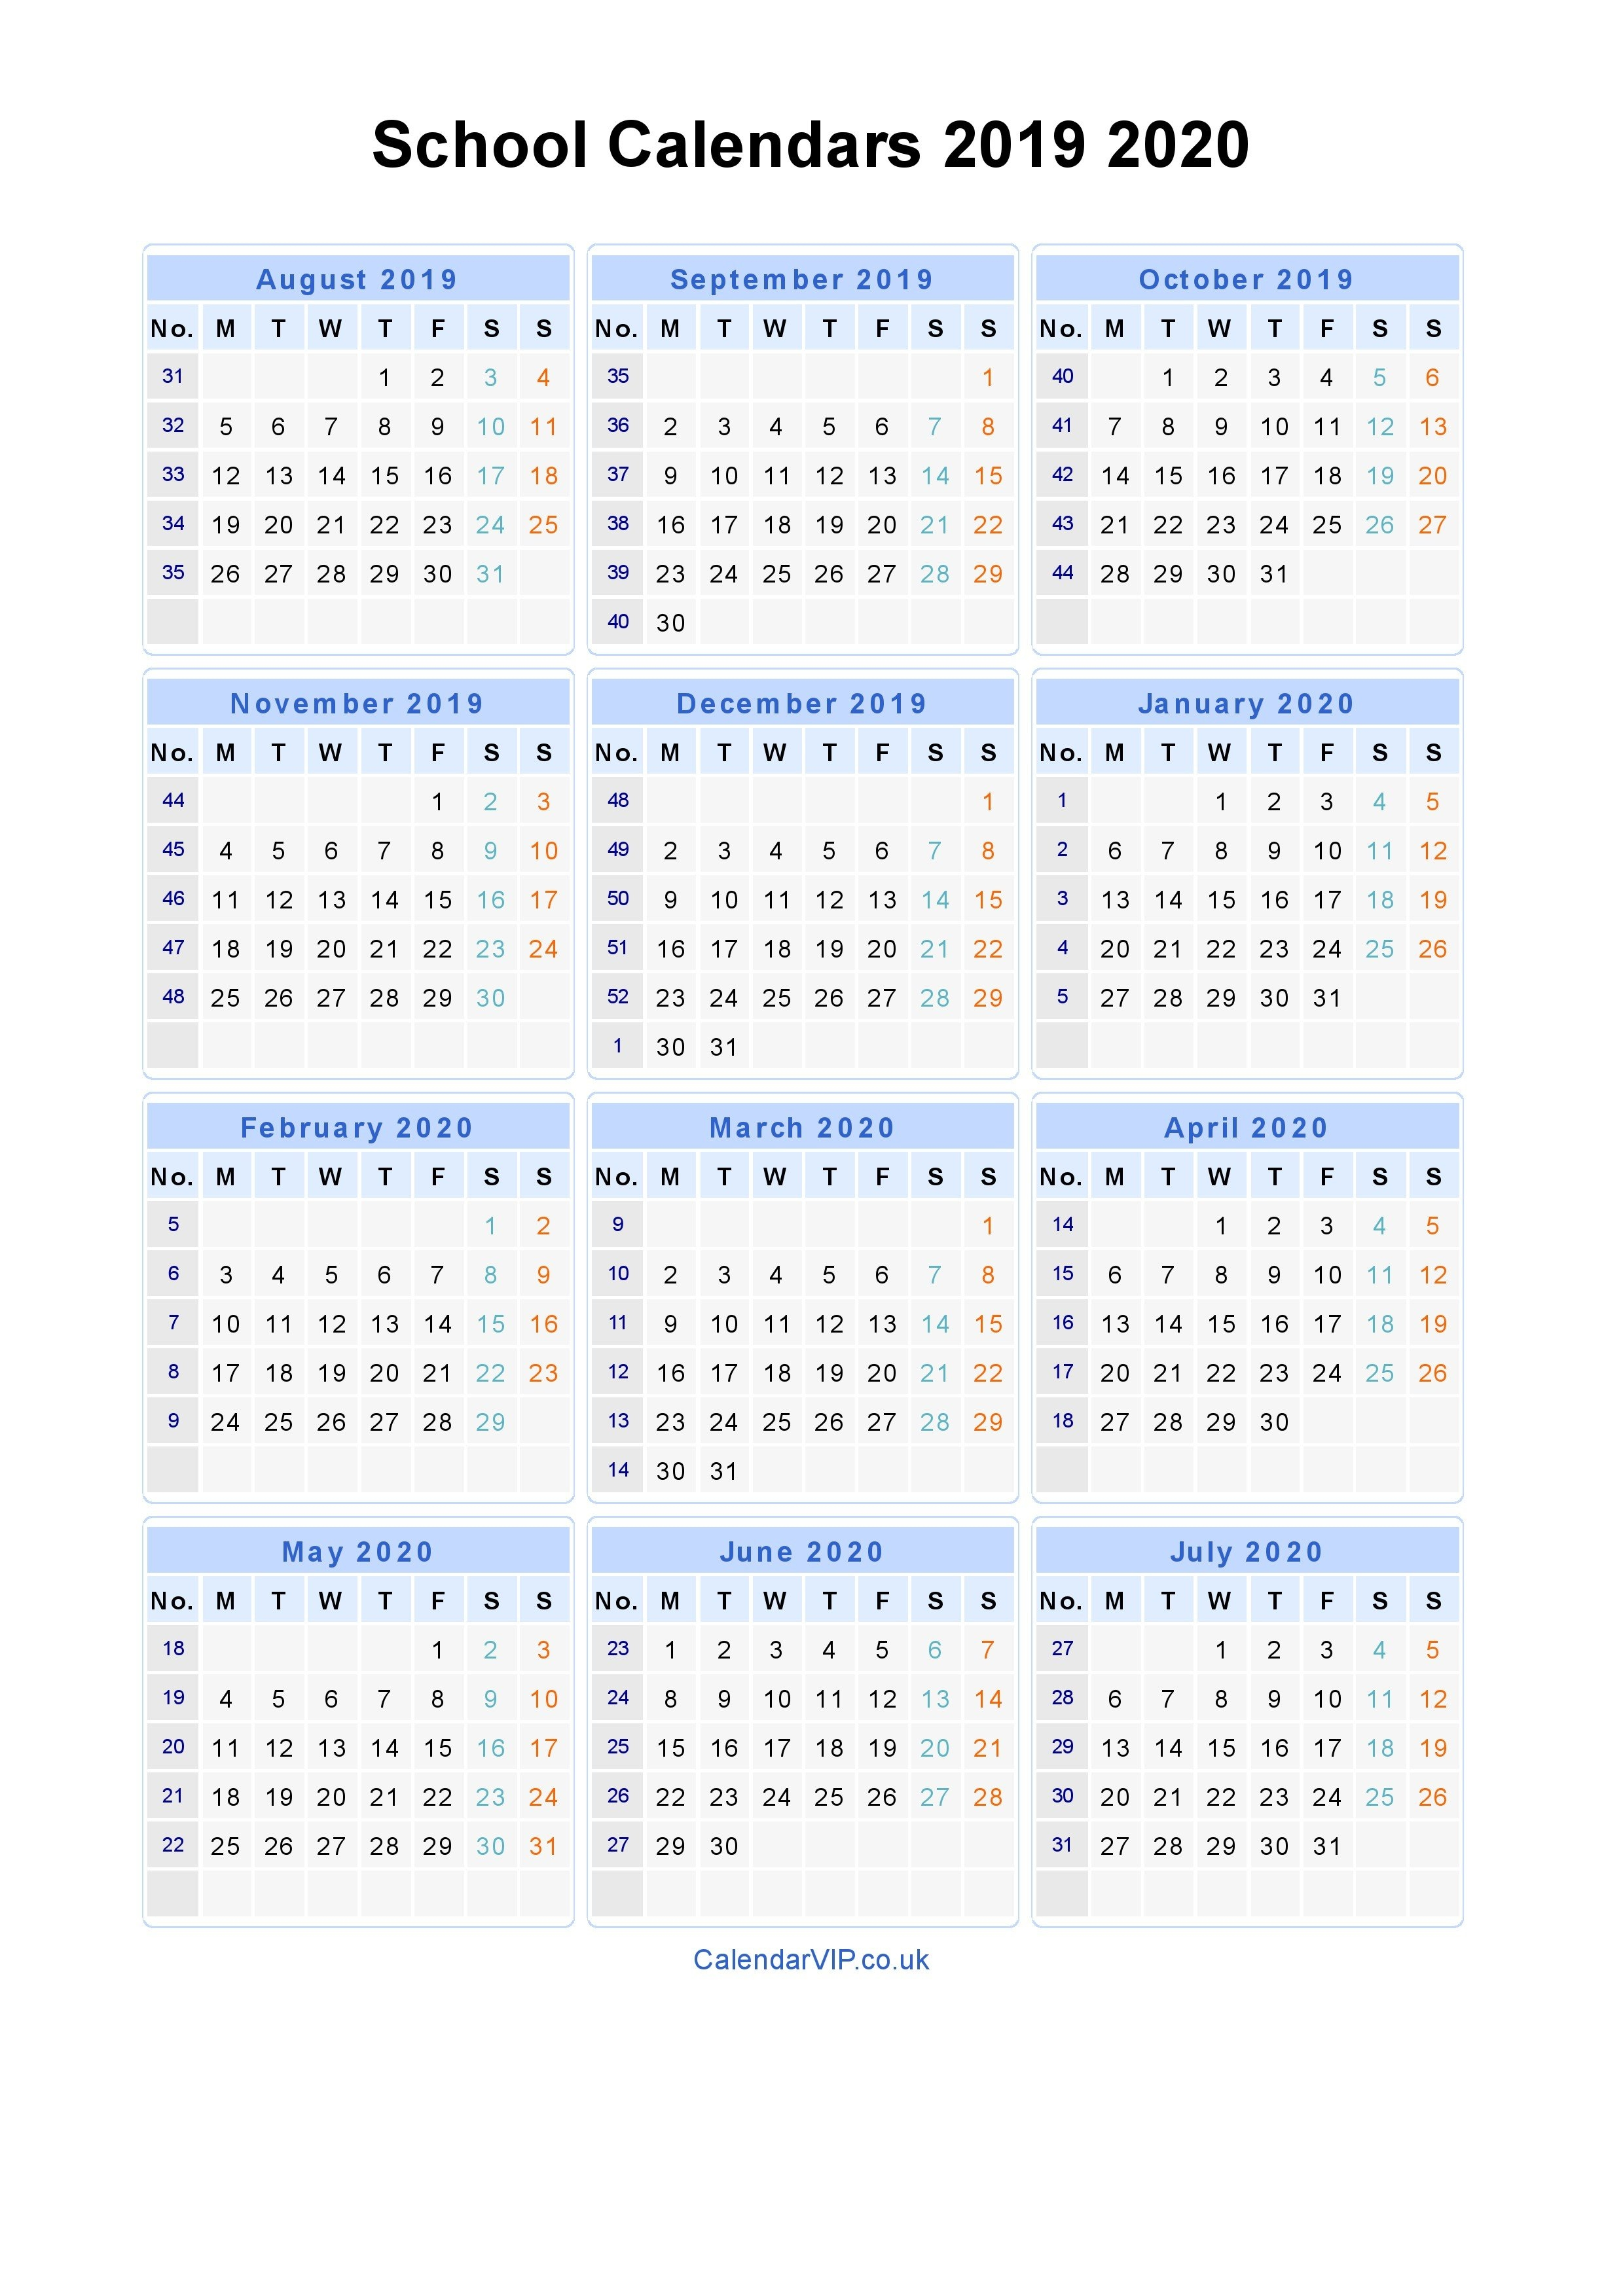 School Calendars 2019 2020 - Calendar From August 2019 To July 2020 2019 Calendar 2020 Printable